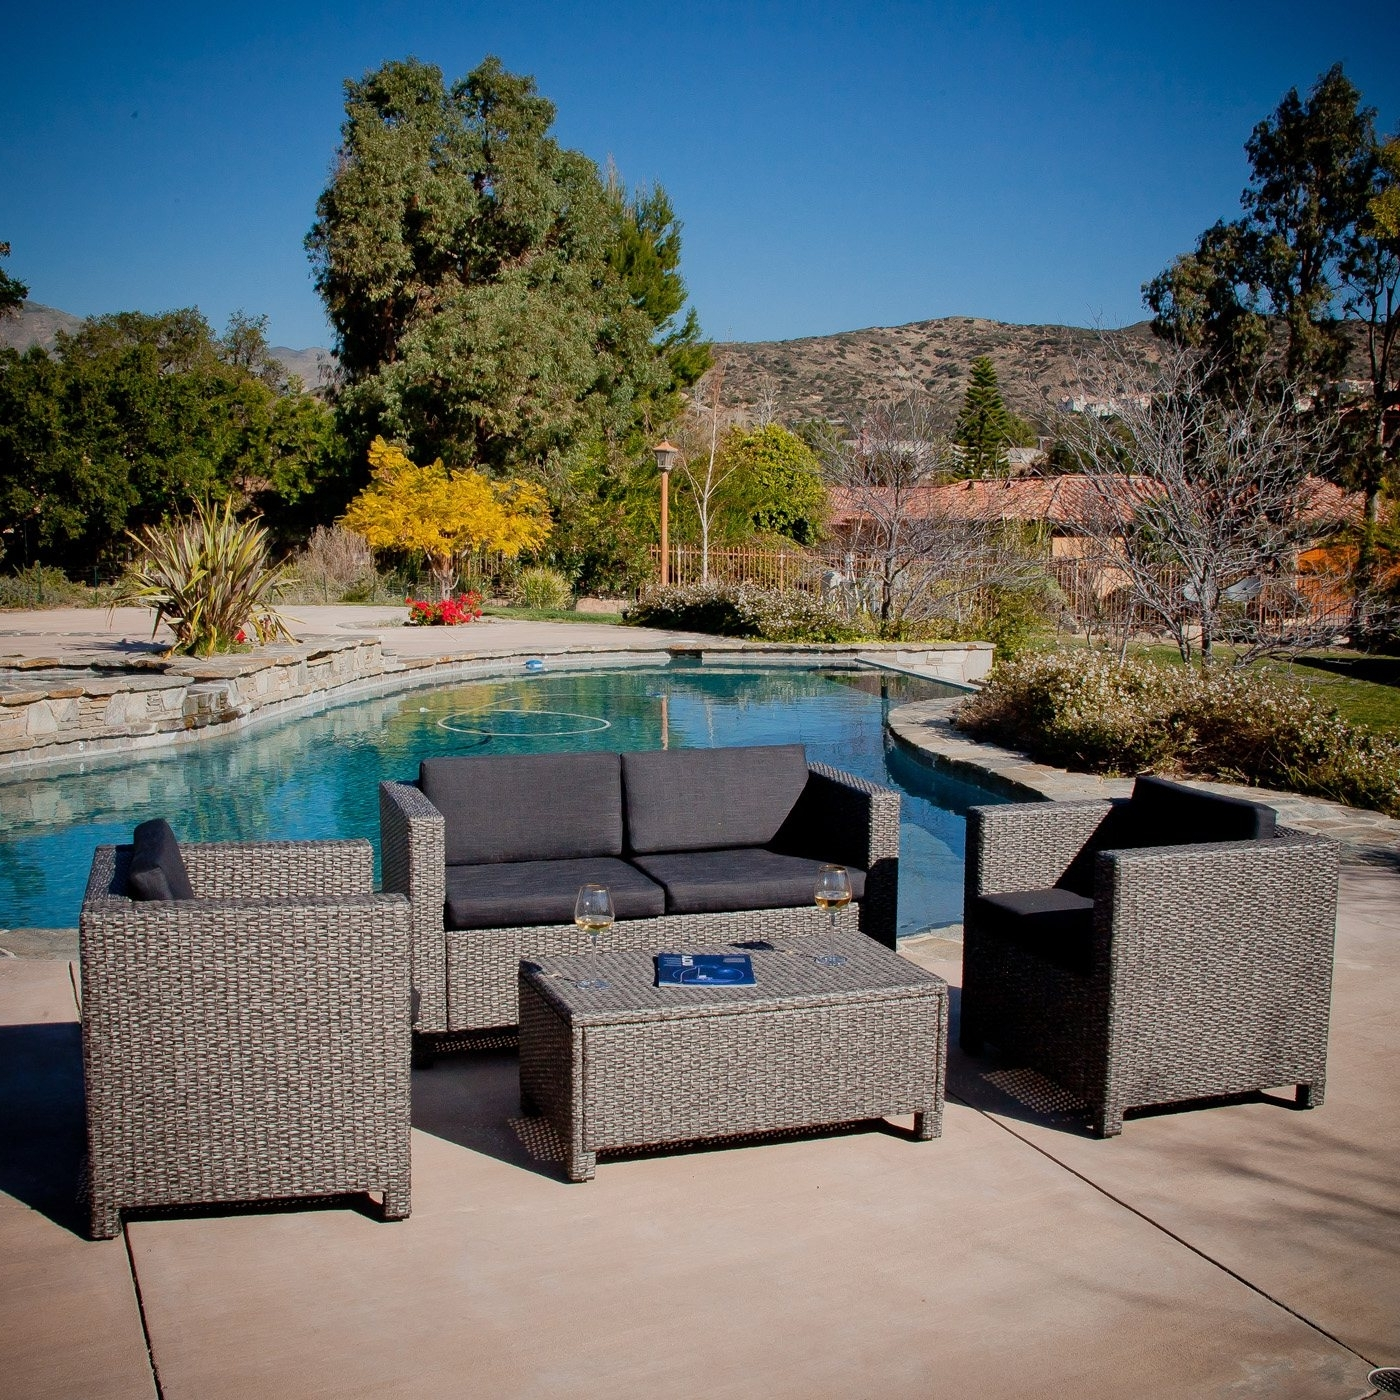 Best Selling Home Decor Puerta Grey Outdoor Wicker Sofa Set Regarding Widely Used Resin Wicker Patio Conversation Sets (View 1 of 15)